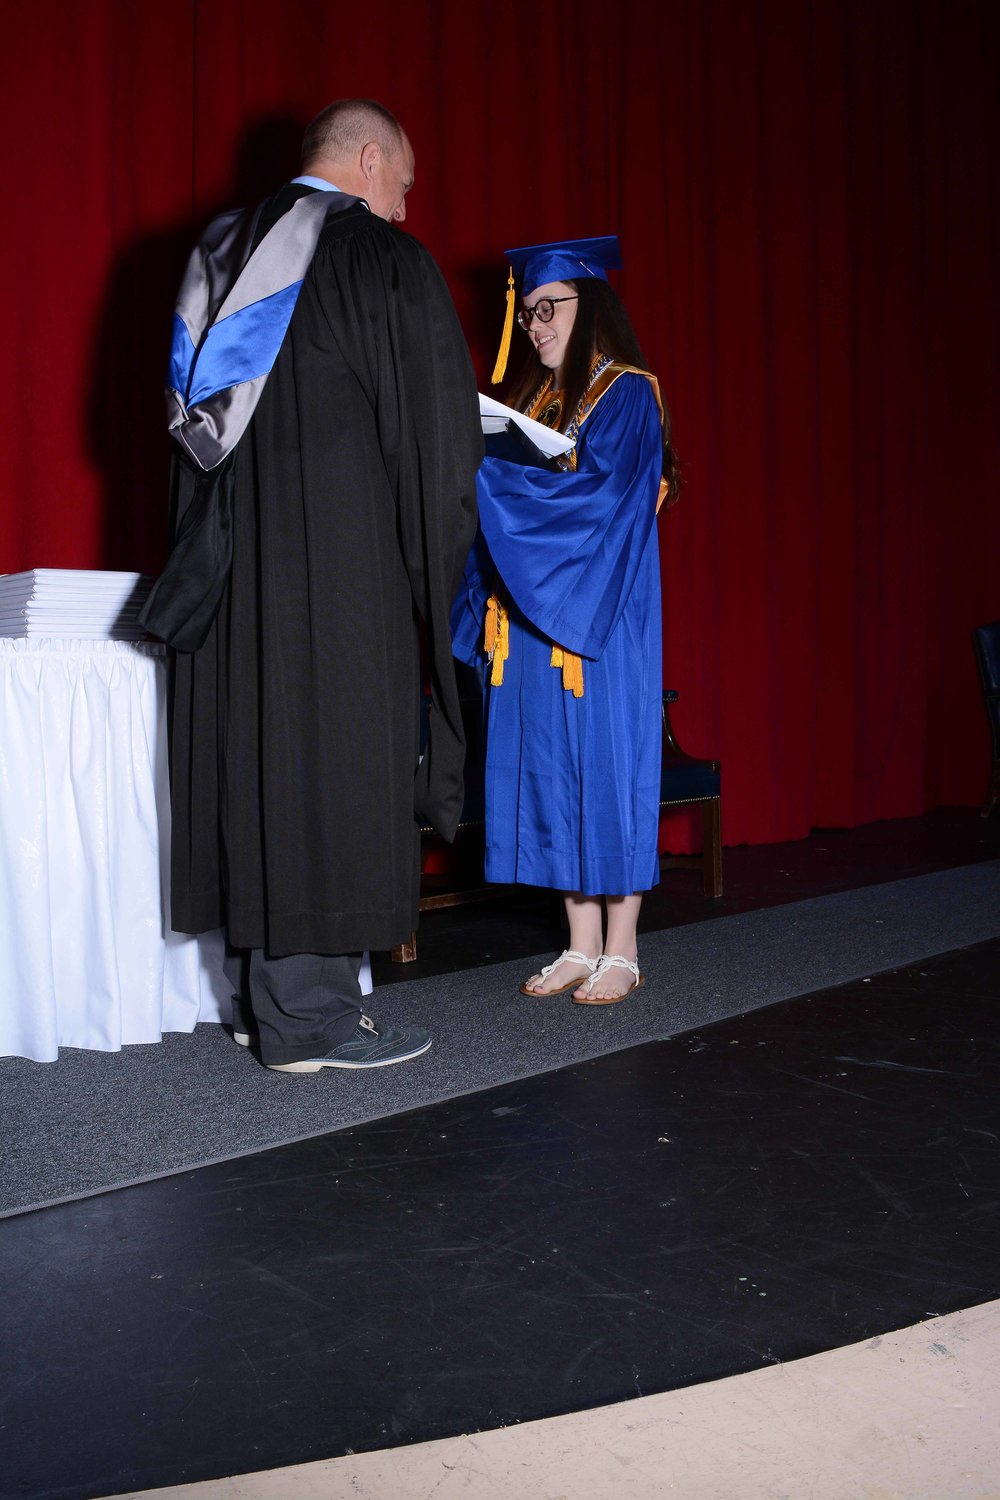 May14 Commencement16.jpg